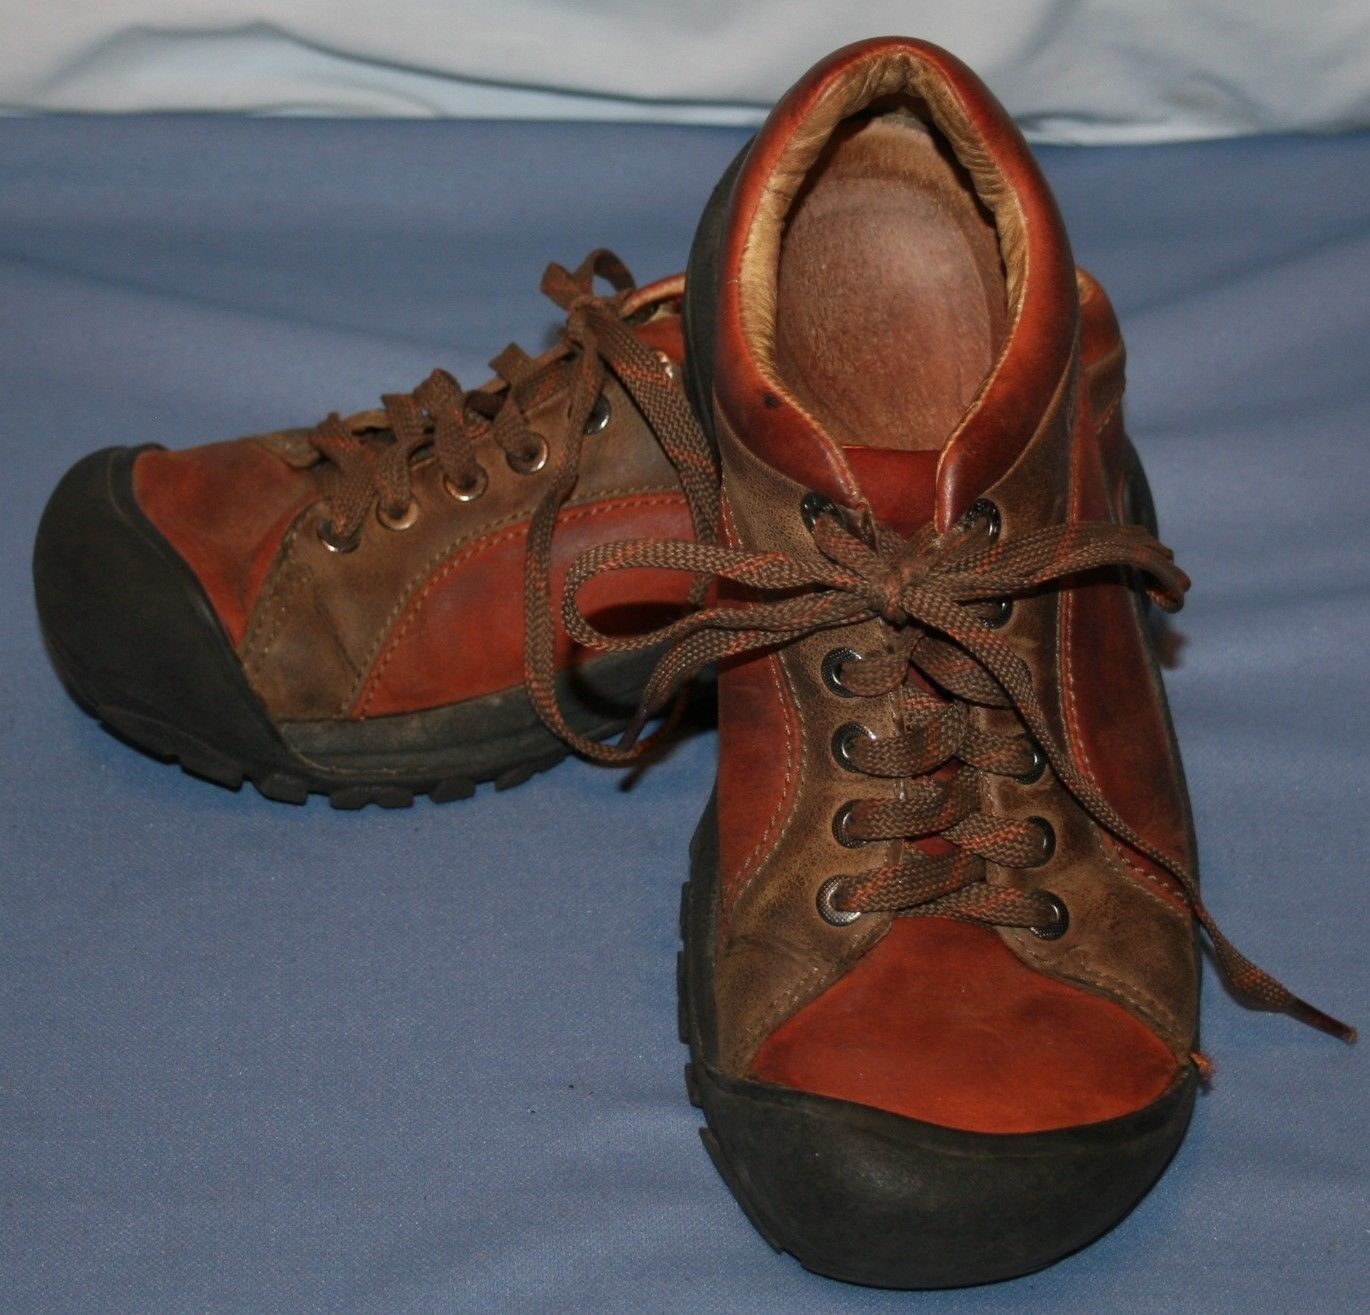 76a6b24a1082 Kids Youth Keen Shoes Sz 7 Brown Leather and 50 similar items. S l1600